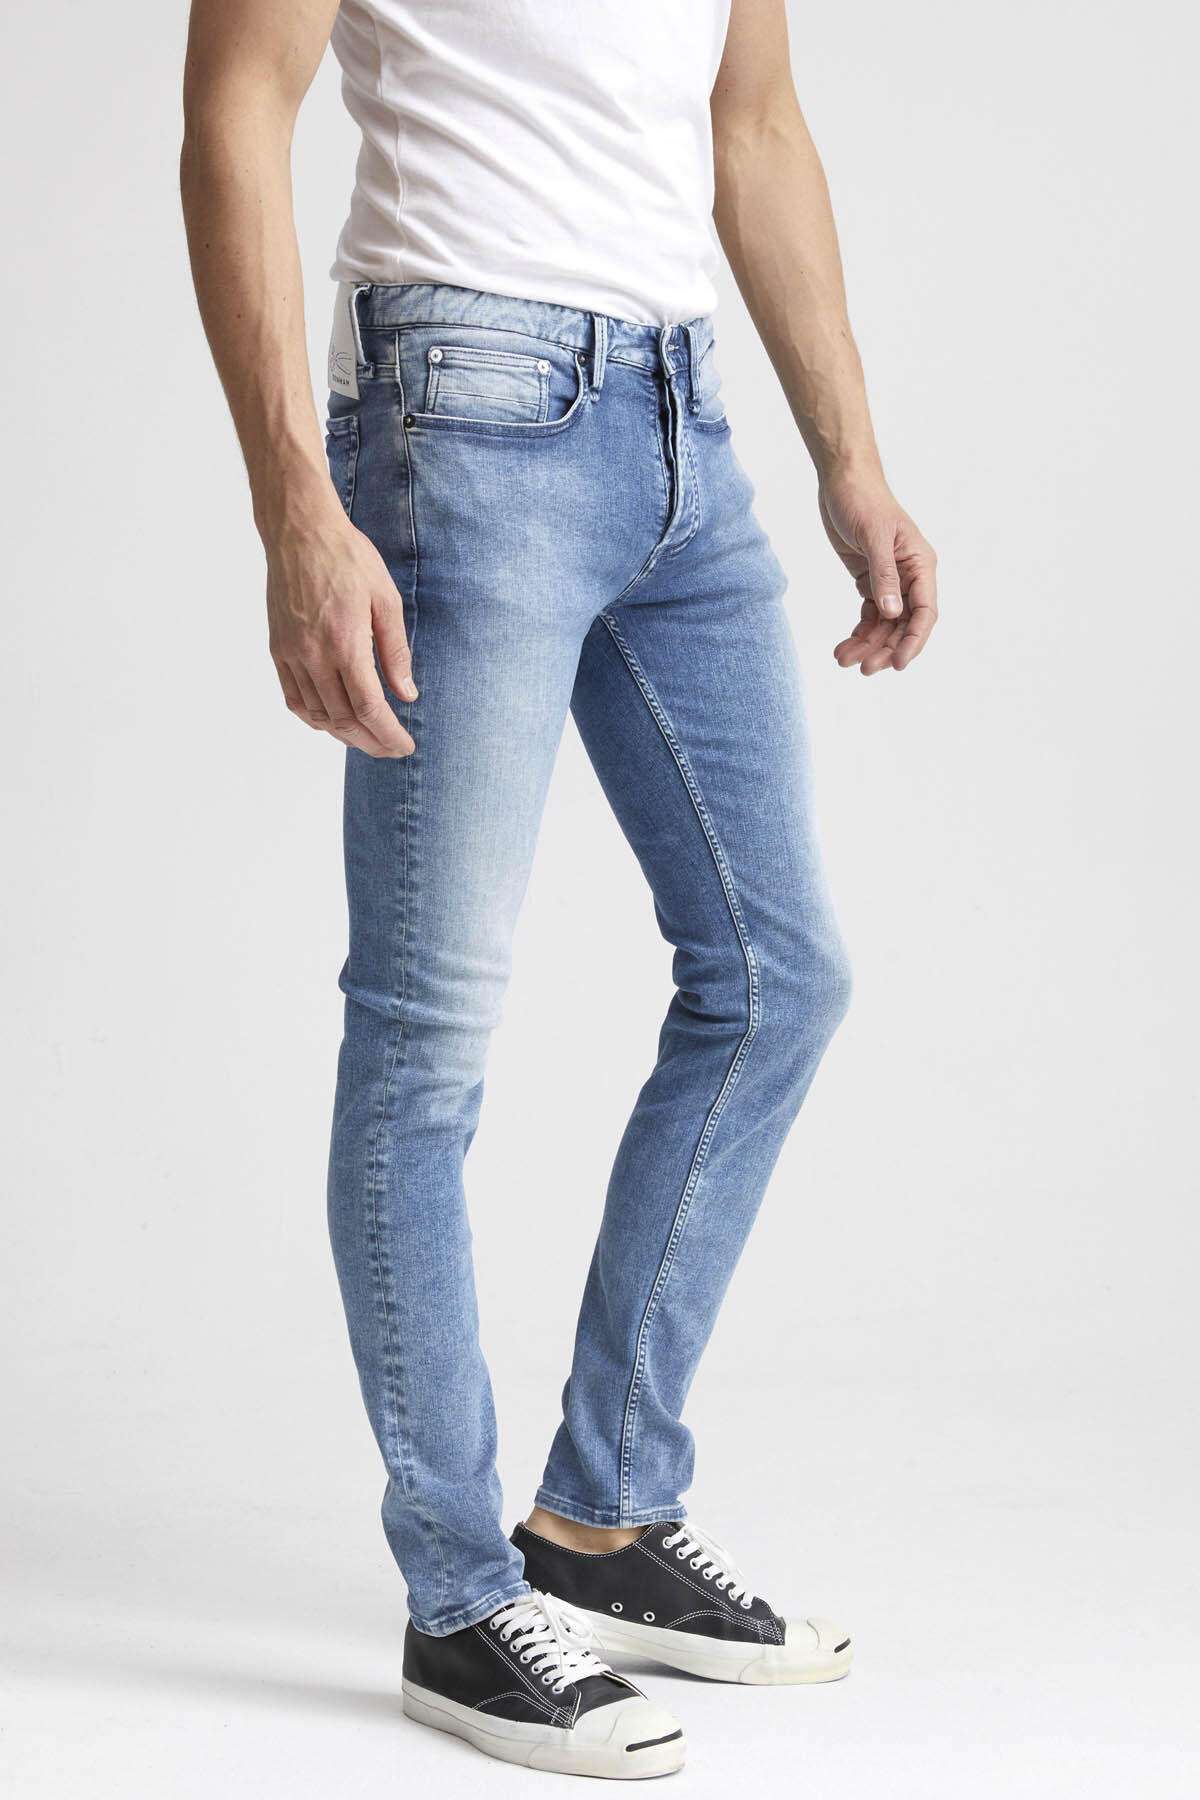 BOLT Sun-faded Indigo Denim - Skinny Fit